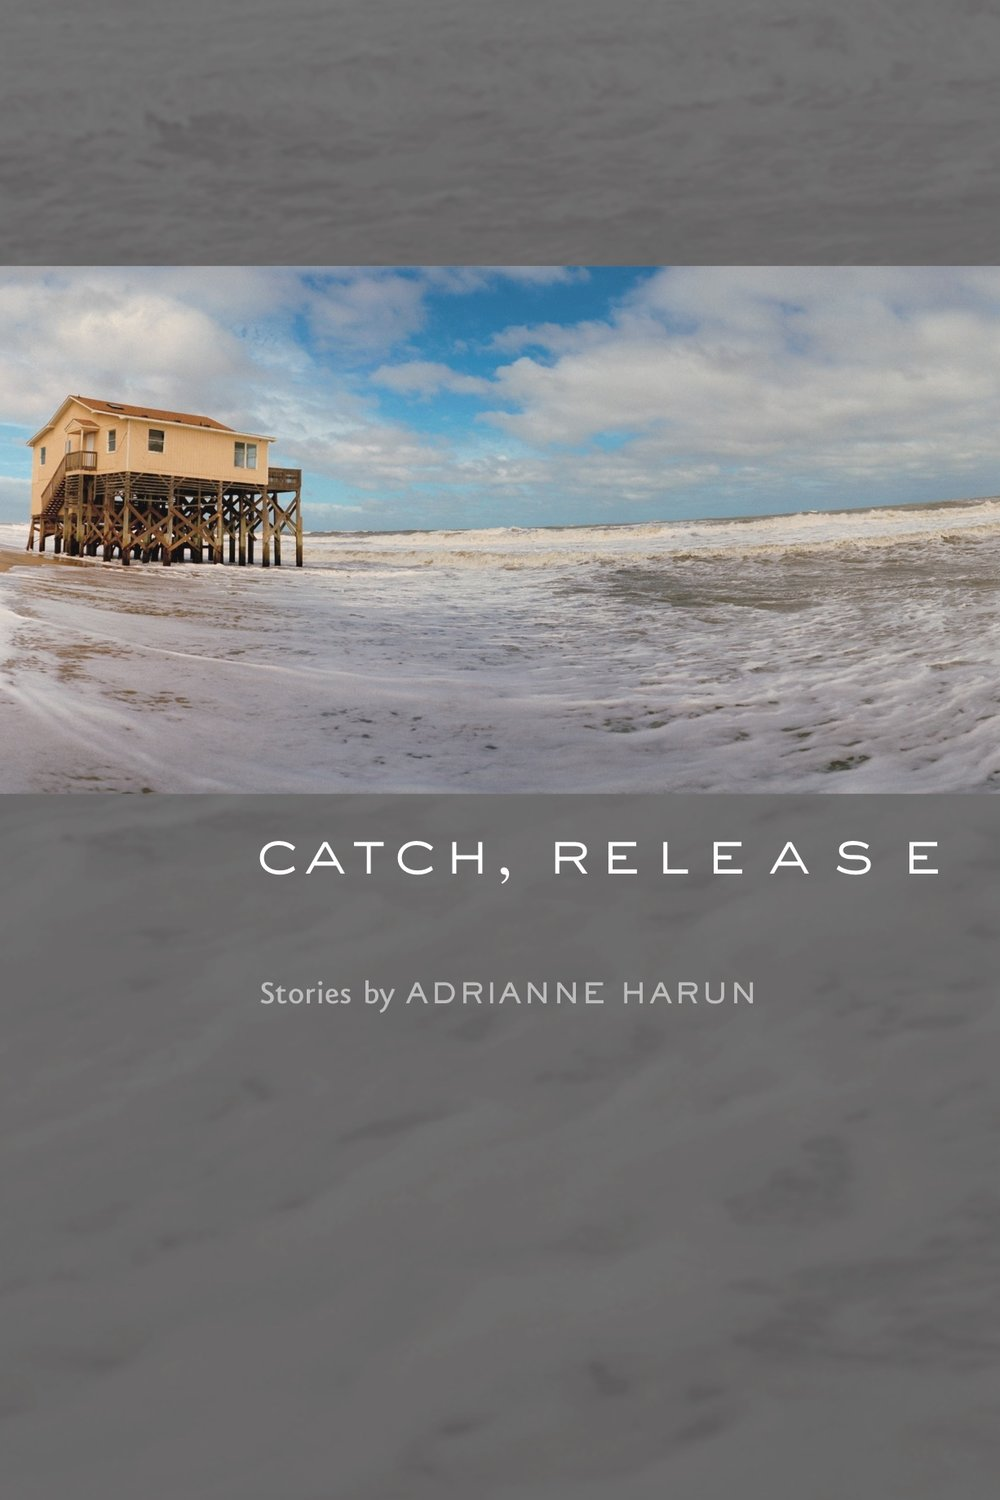 CATCH, RELEASE                                                                                      In  Catch, Release , Adrianne Harun's second story collection, loss is the driver. But it's less the usual somber shadow-figure of grieving than an erratically interesting cousin, unmoored, even exhilarated, by the sudden flight into emptiness, the freedom of being neither here nor there. In this suspended state, anything might happen―and it does. In diverse settings that include, among other places, a British Columbian island, a haunted Midwestern farmhouse, a London townhome, and a dementia care facility overpopulated with dangerously idle guardian angels, characters reconfigure whole worlds as they navigate states defined by absence.                                                 More Information      Pre-Order Book